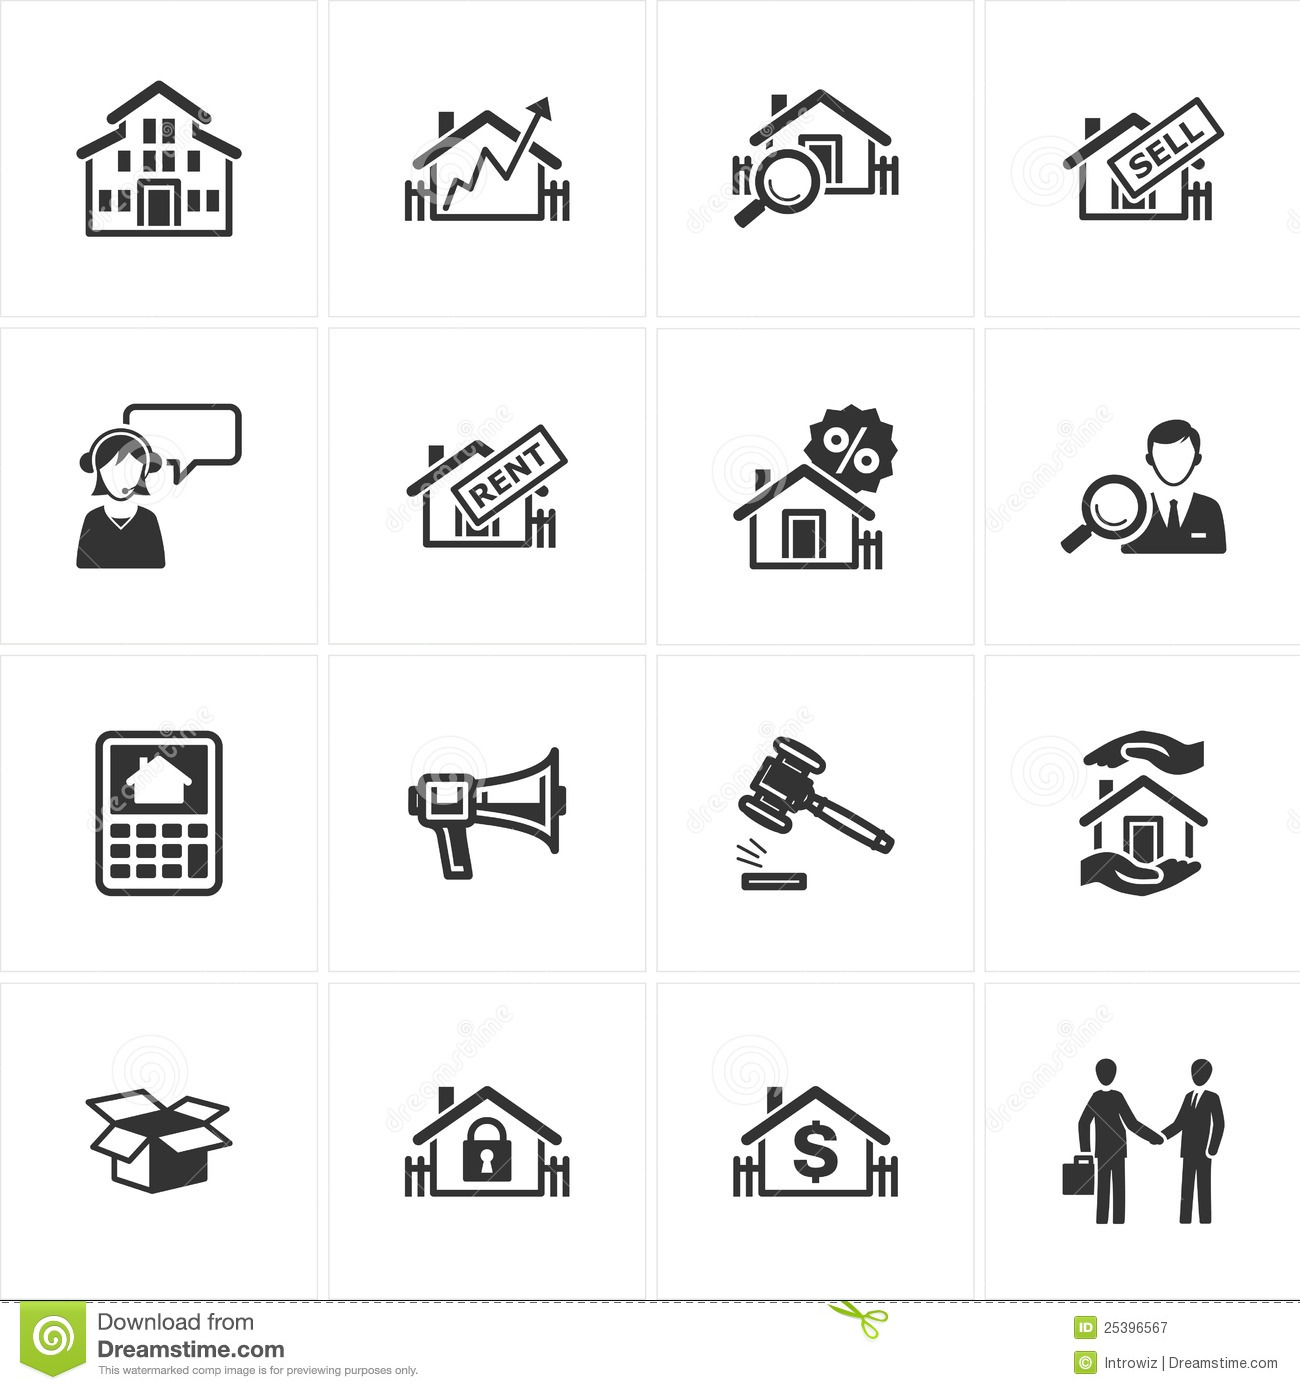 Real Estate Icons Royalty Free Stock Photography  Image 25396567